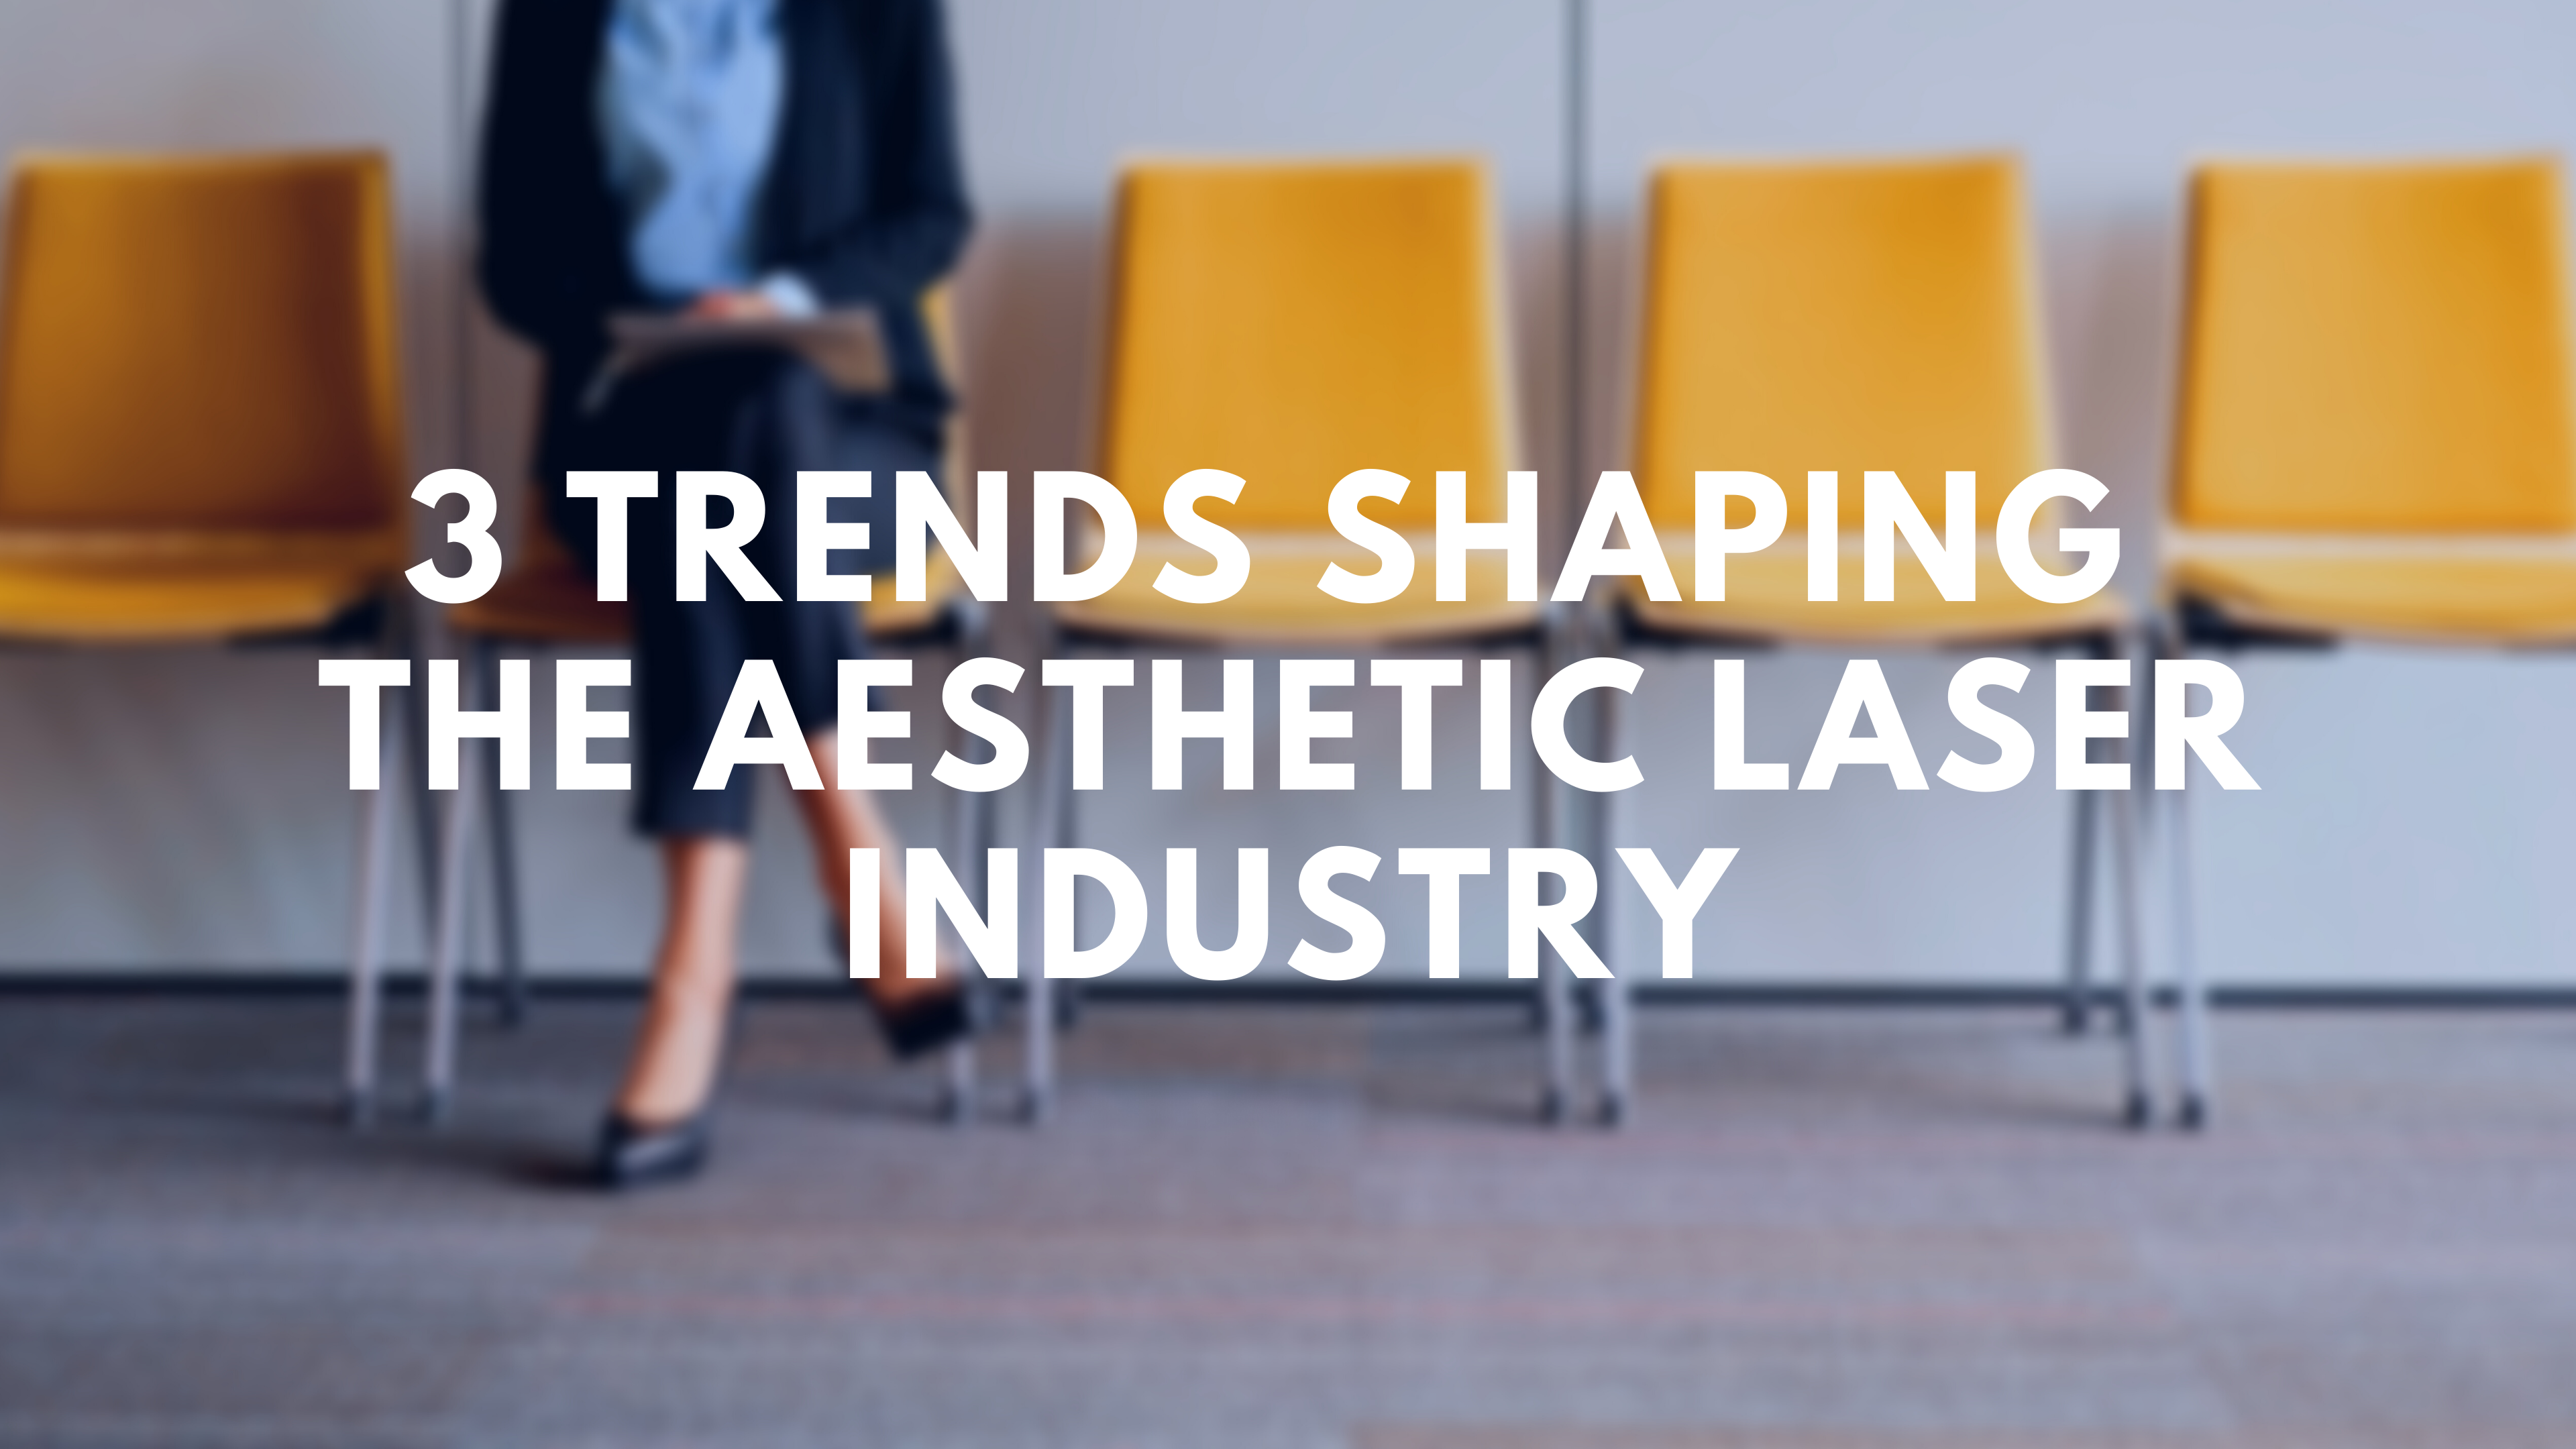 3 Trends Shaping the Aesthetic Laser Industry